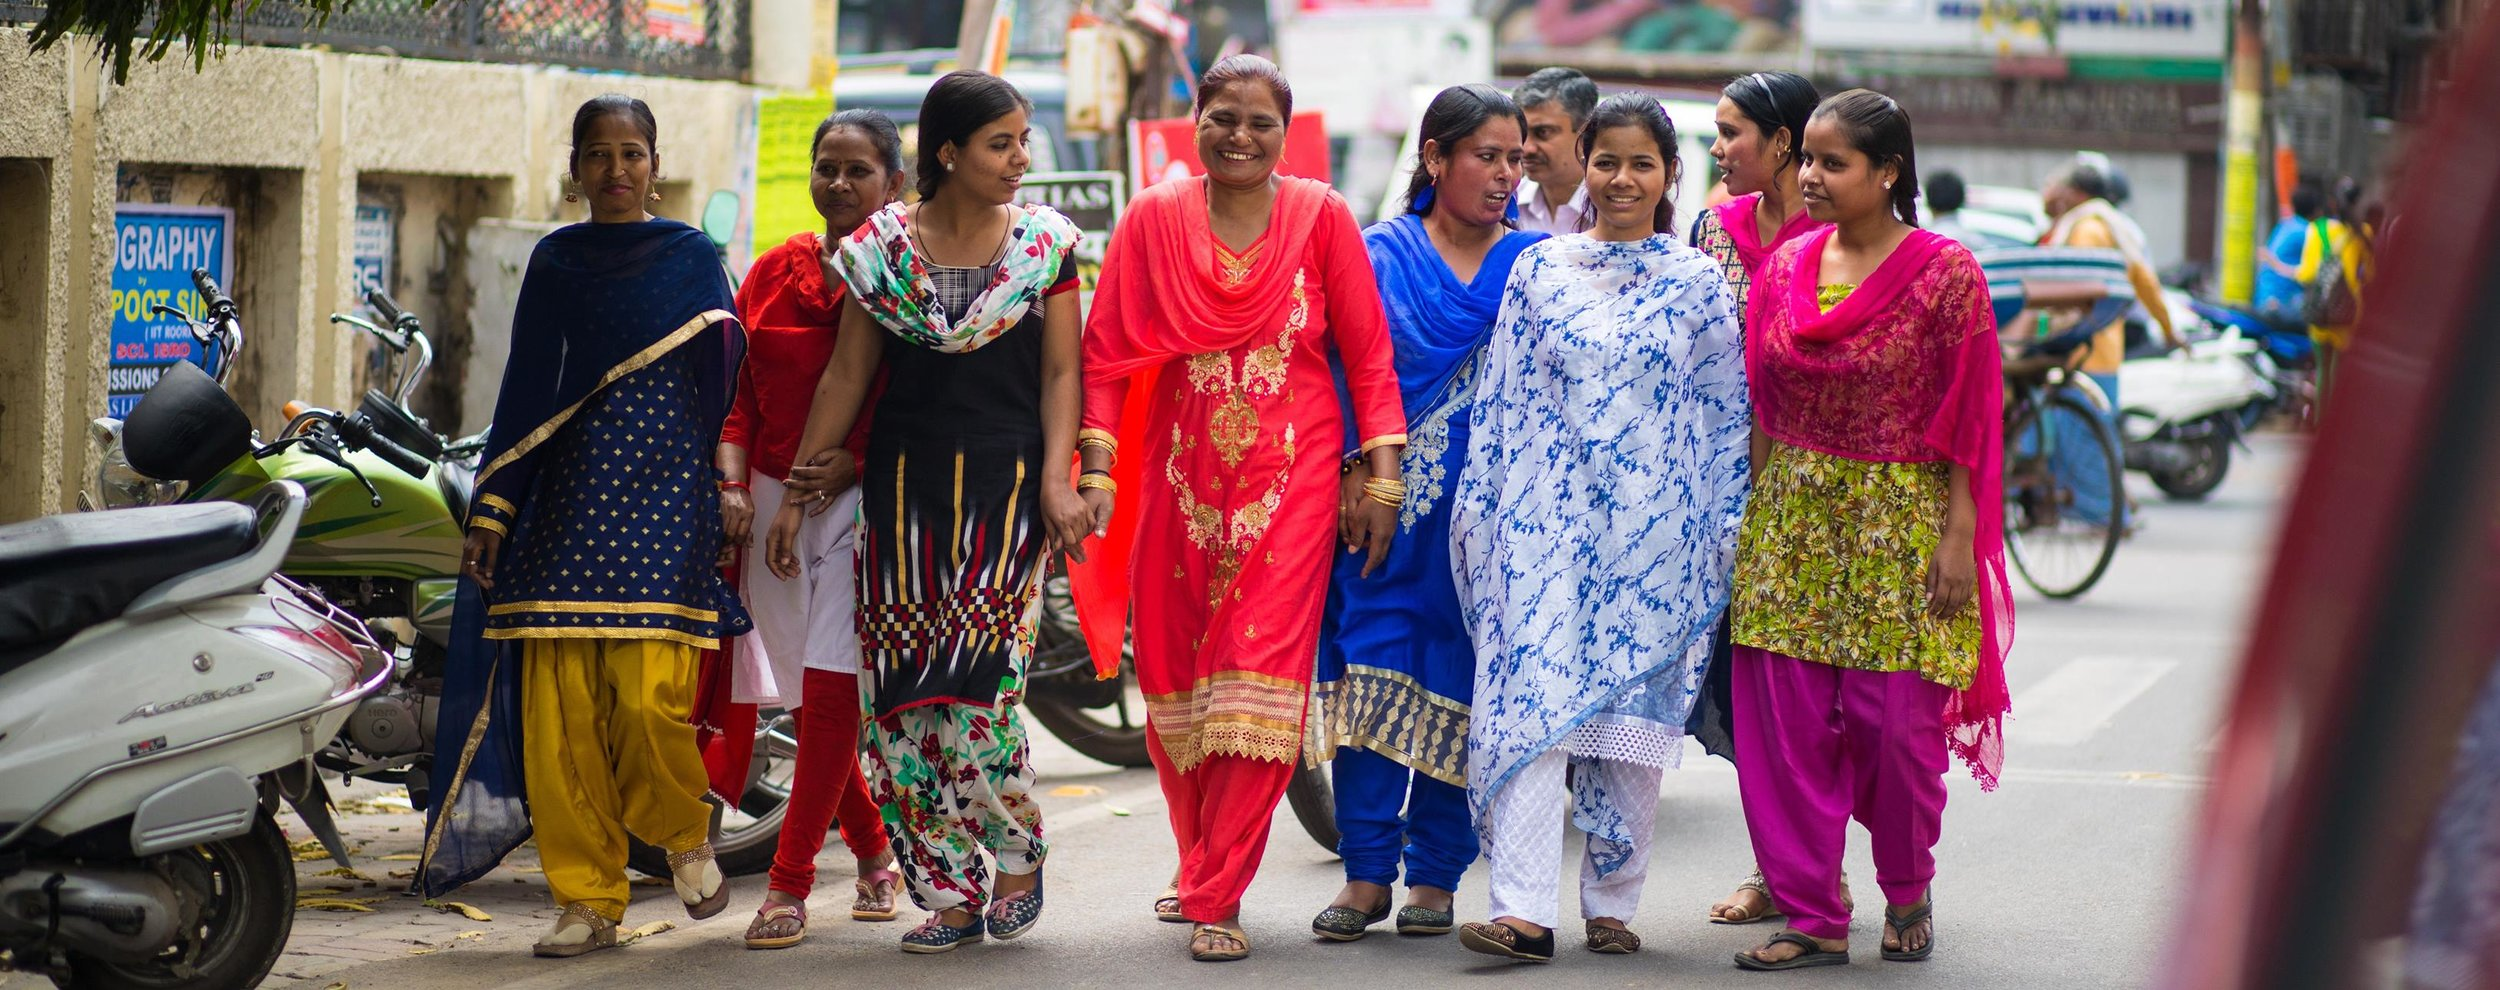 Some of the women being empowered through this social enterprise